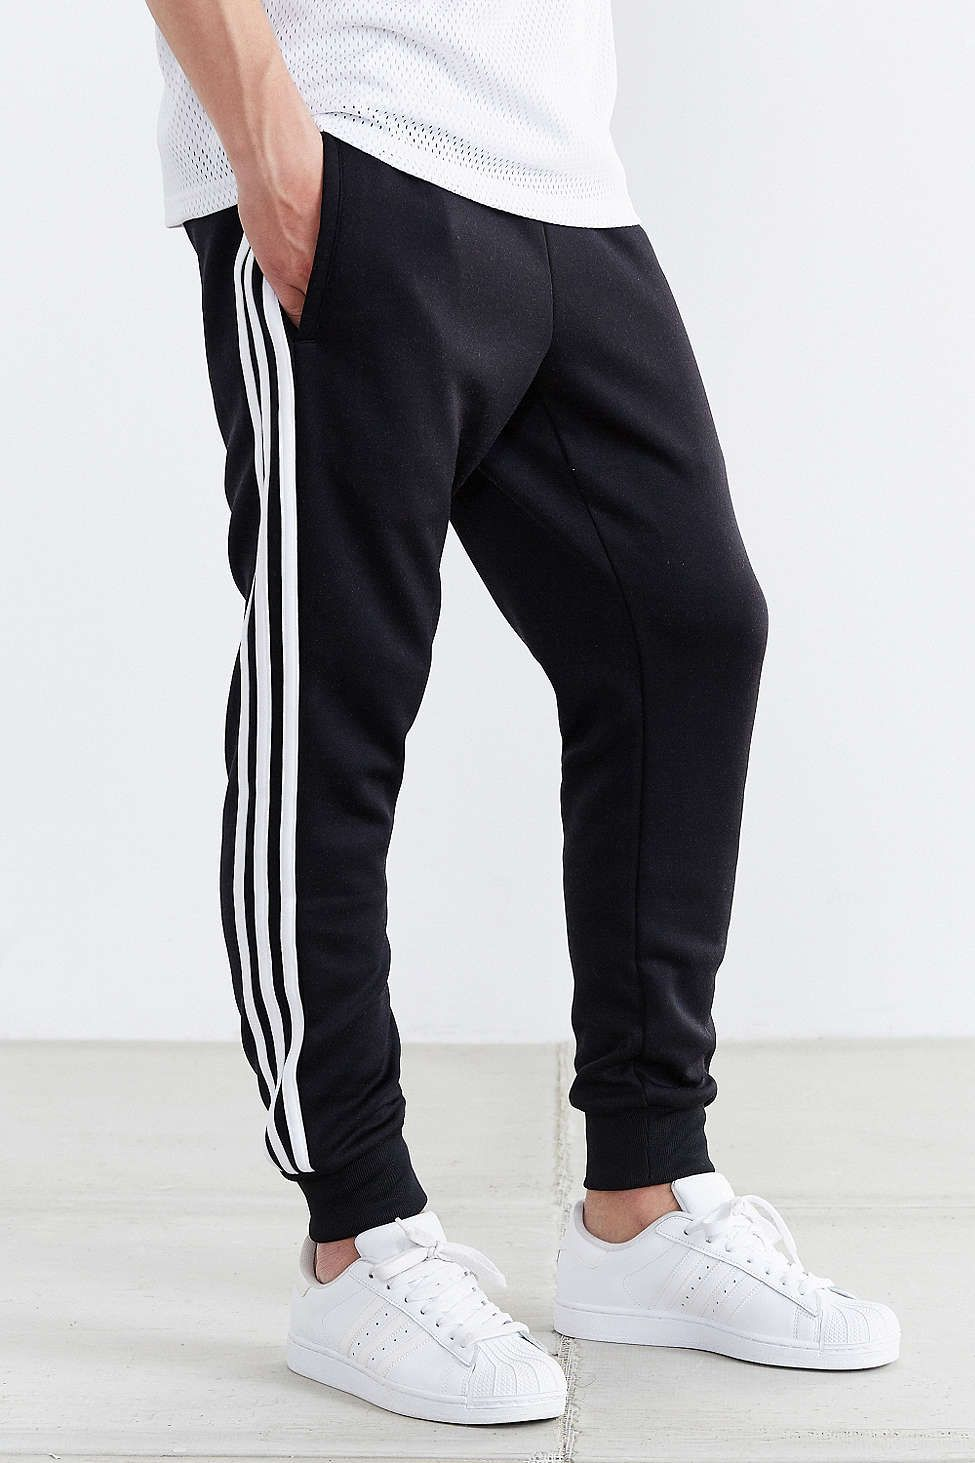 bad4dbe8aa1c adidas Originals Superstar Cuff Track Pant - Urban Outfitters